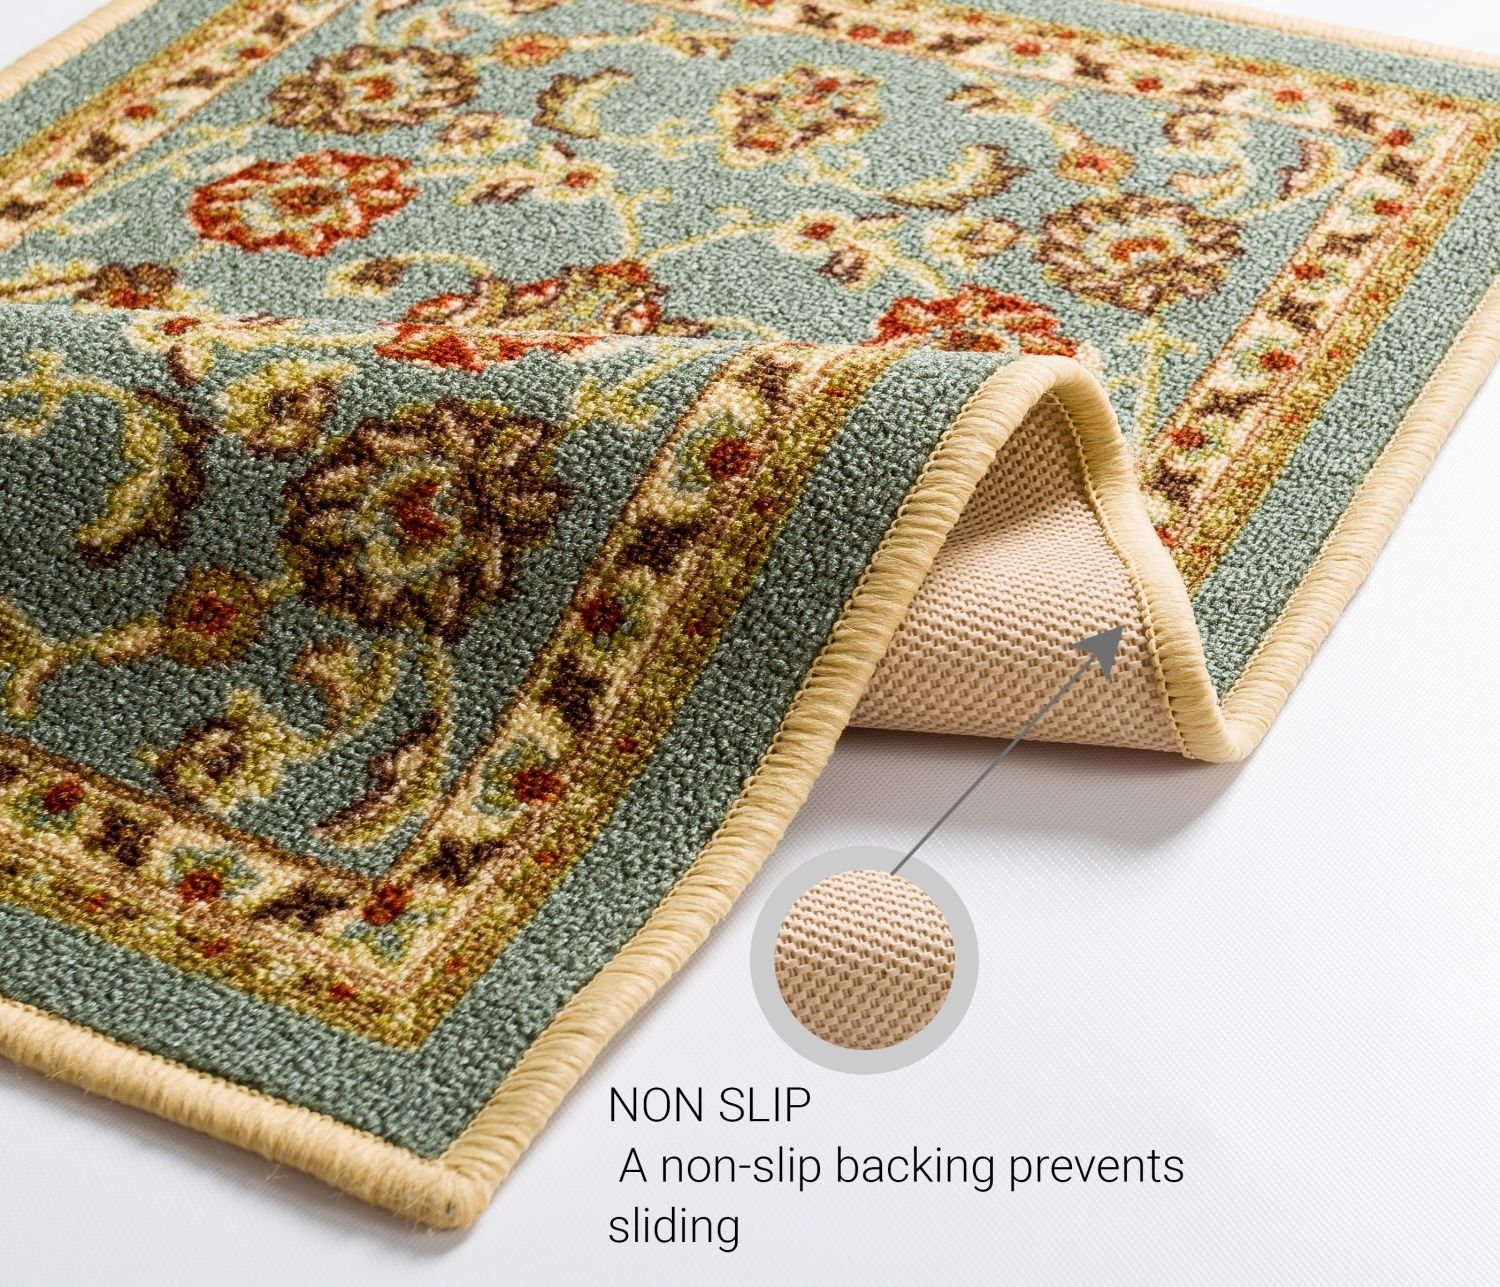 Well Woven Nonskid Slip Rubber Back Antibacterial 3x12 27 X 12 Runner Rug Timeless Oriental Blue T Well Woven Traditional Persian Rugs Indoor Outdoor Area Rugs Washable throw rugs with rubber backing